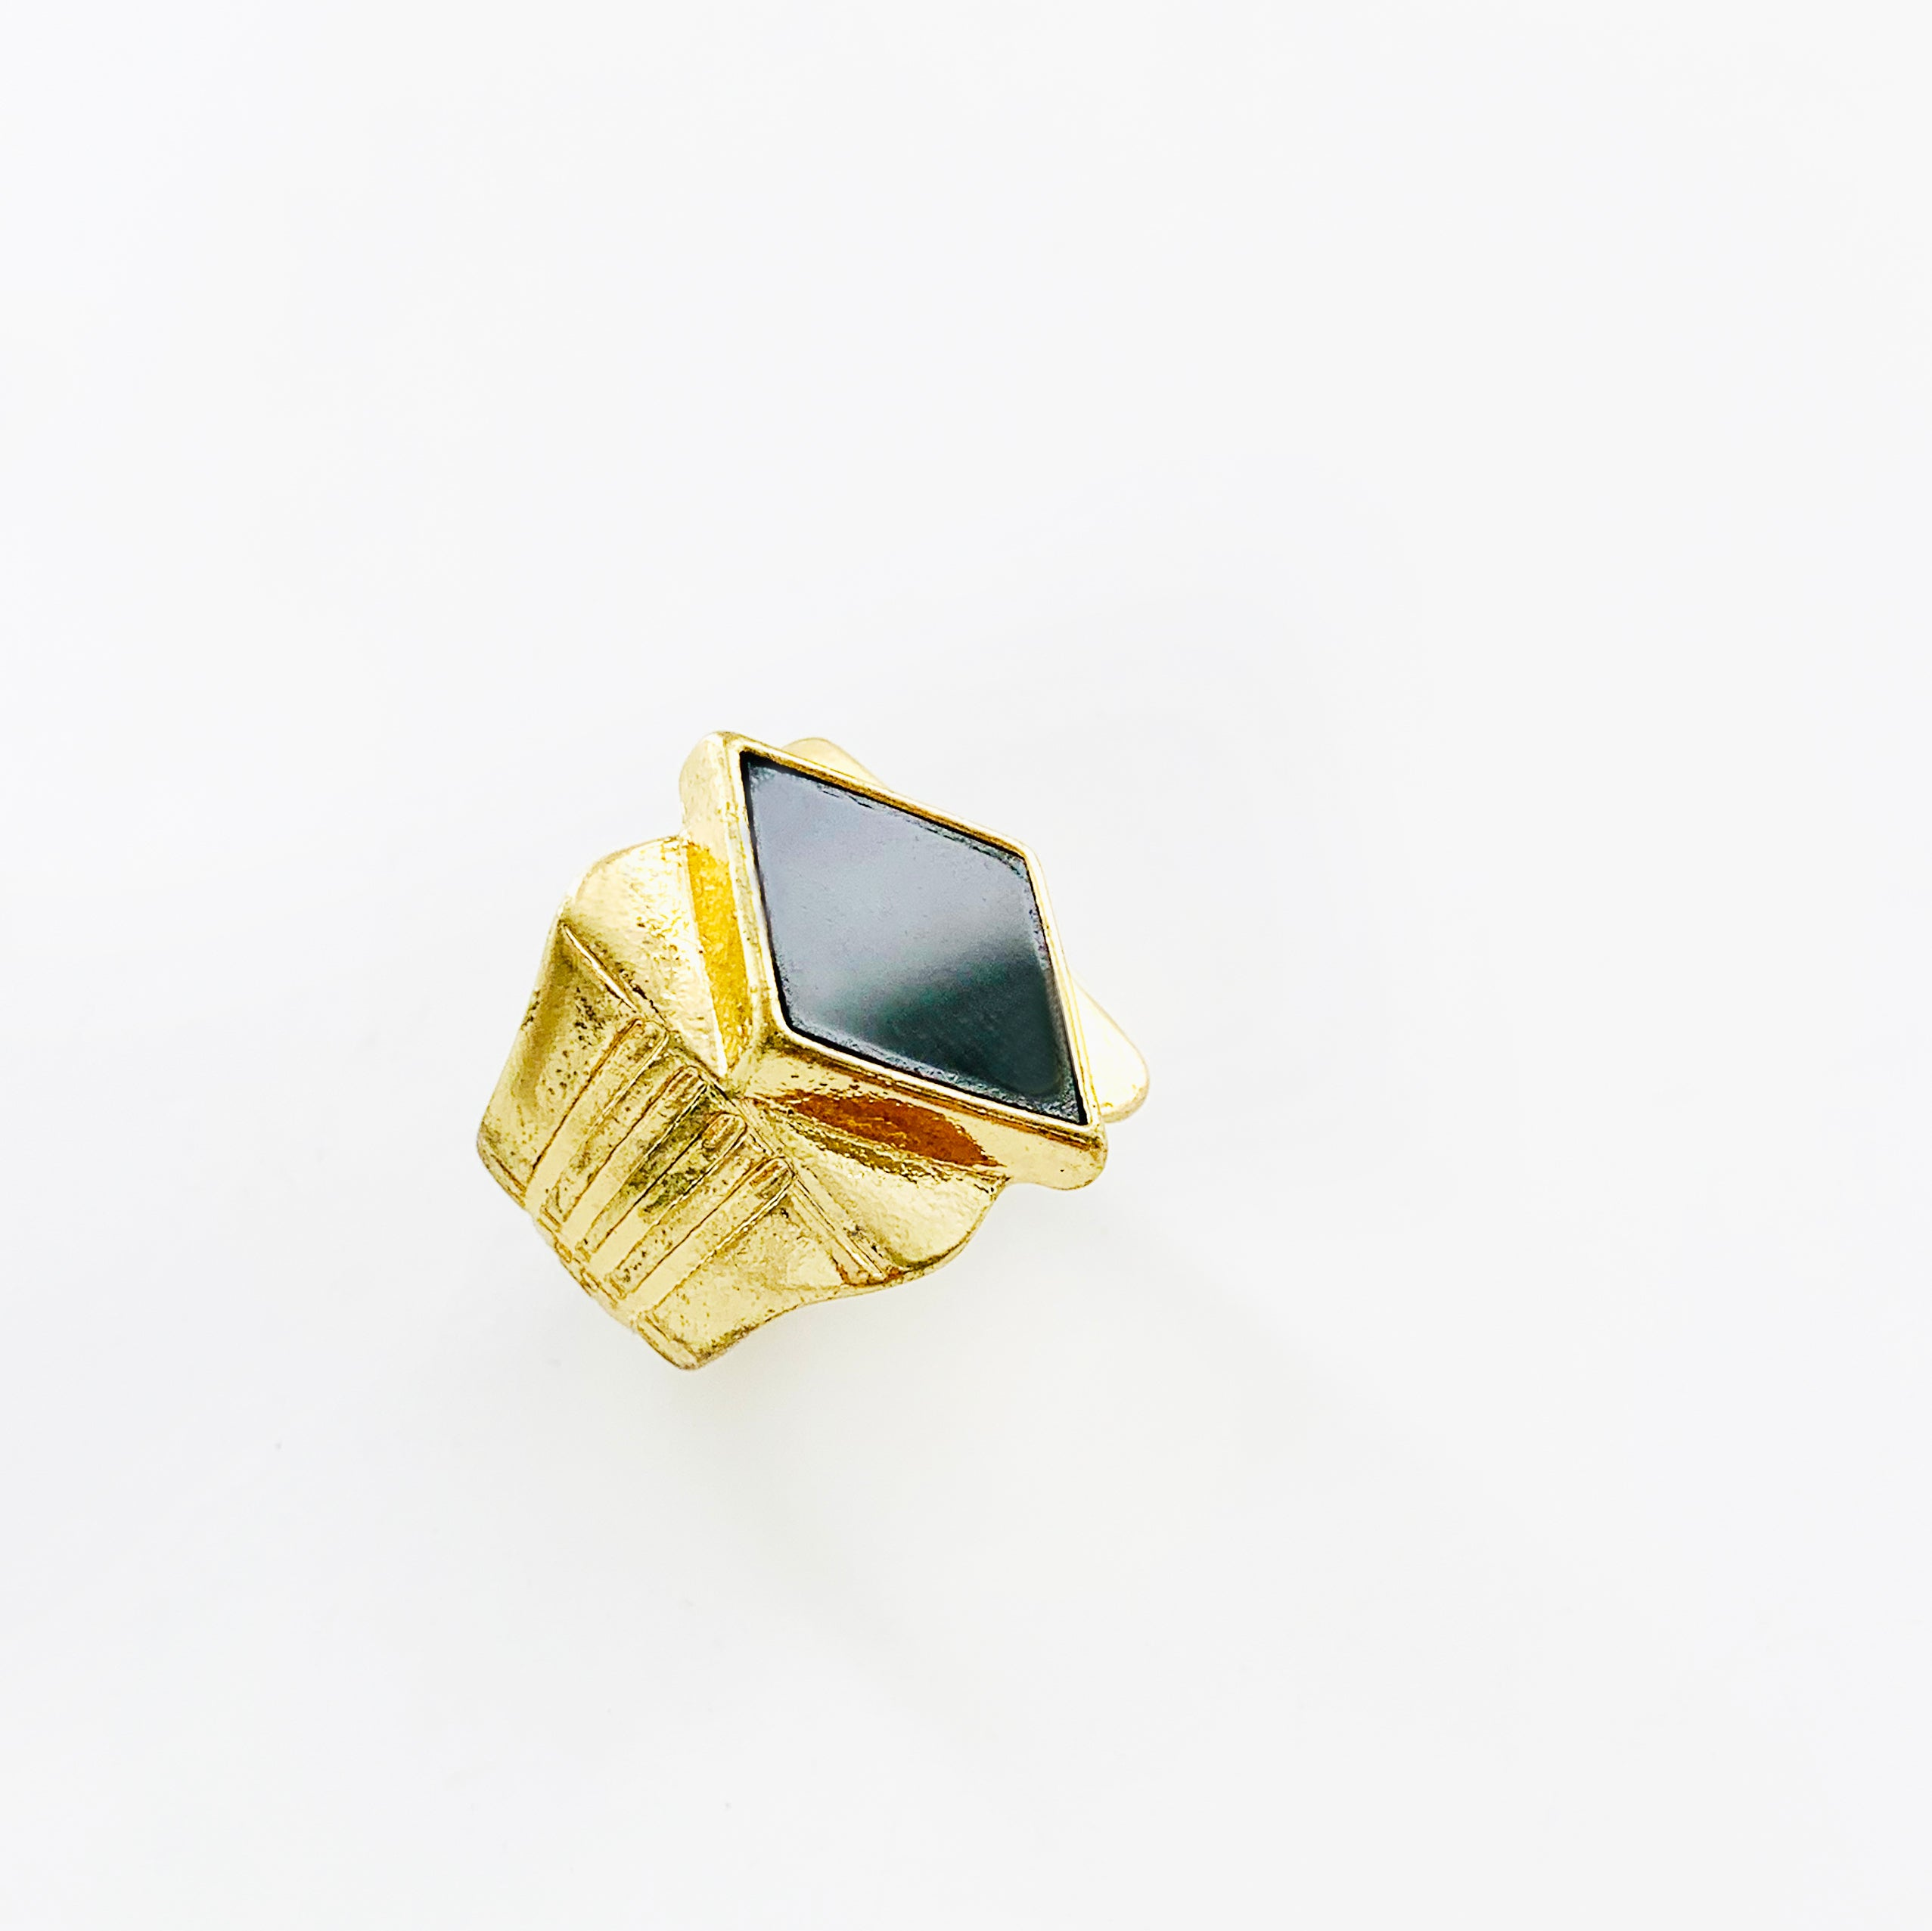 Chunky gold ring with diamond-shaped black stone